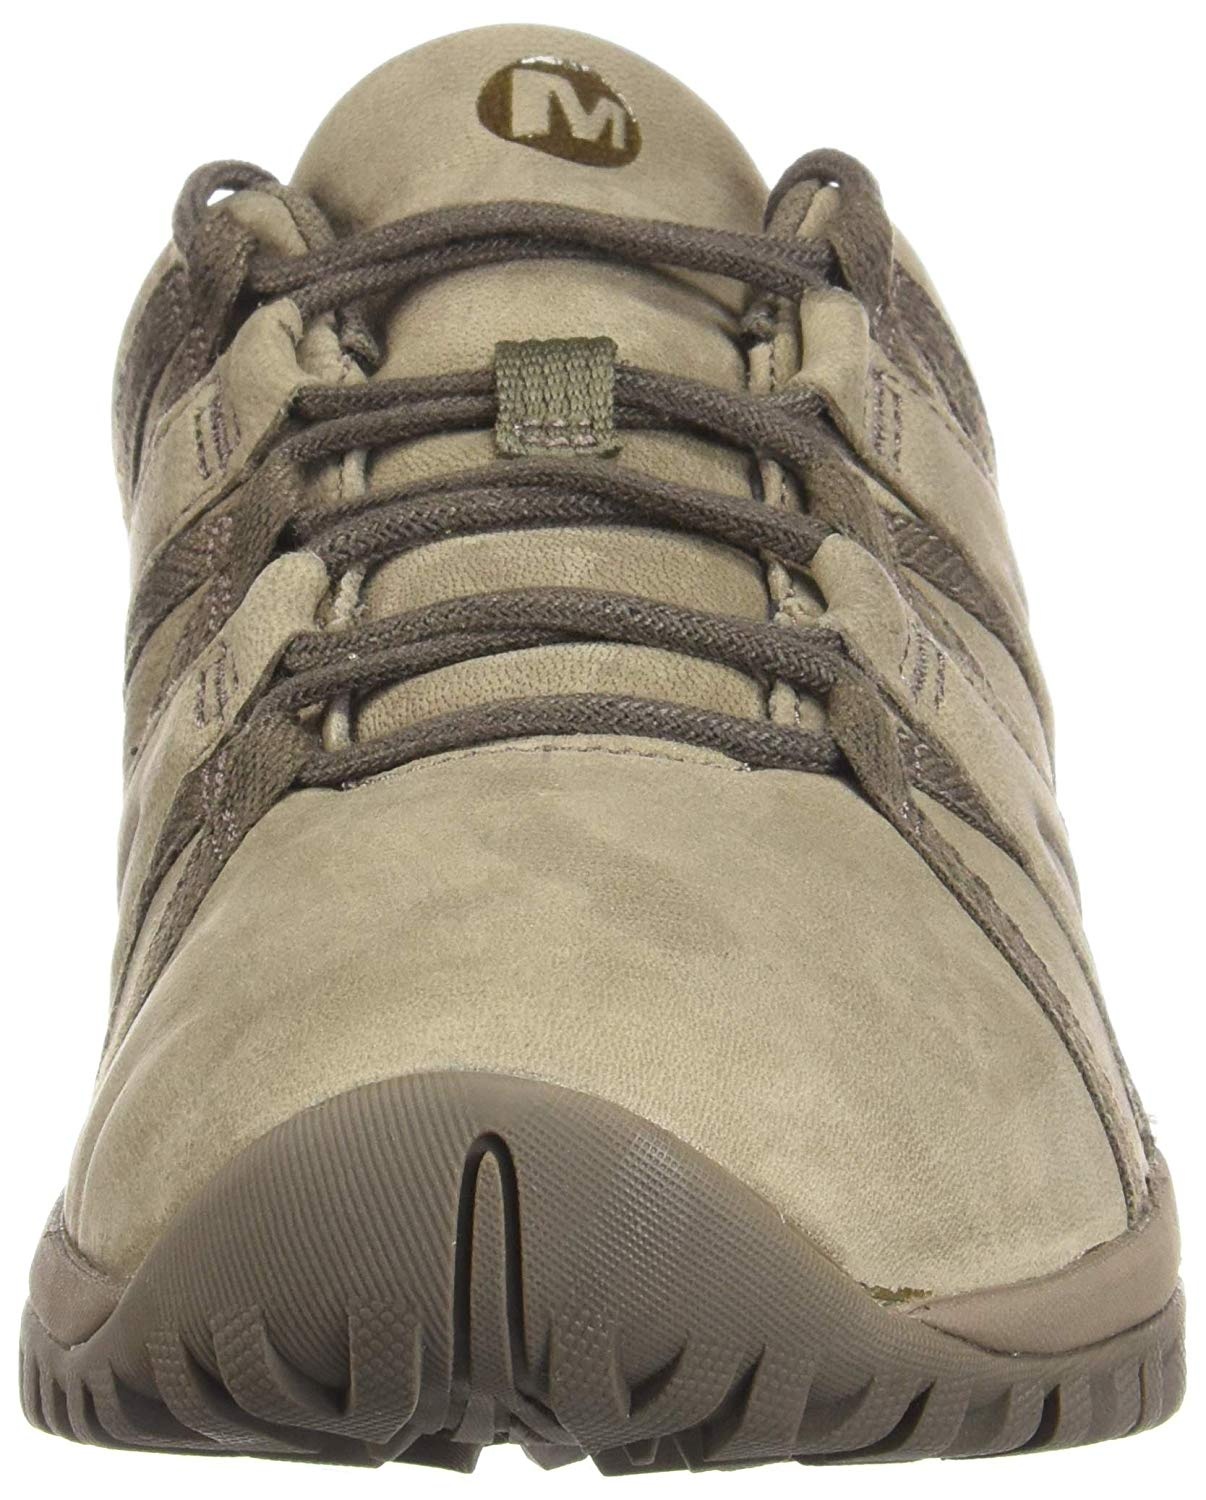 5d8a12e1fe19 Merrell Women s Siren Guided Leather Q2 Sneaker